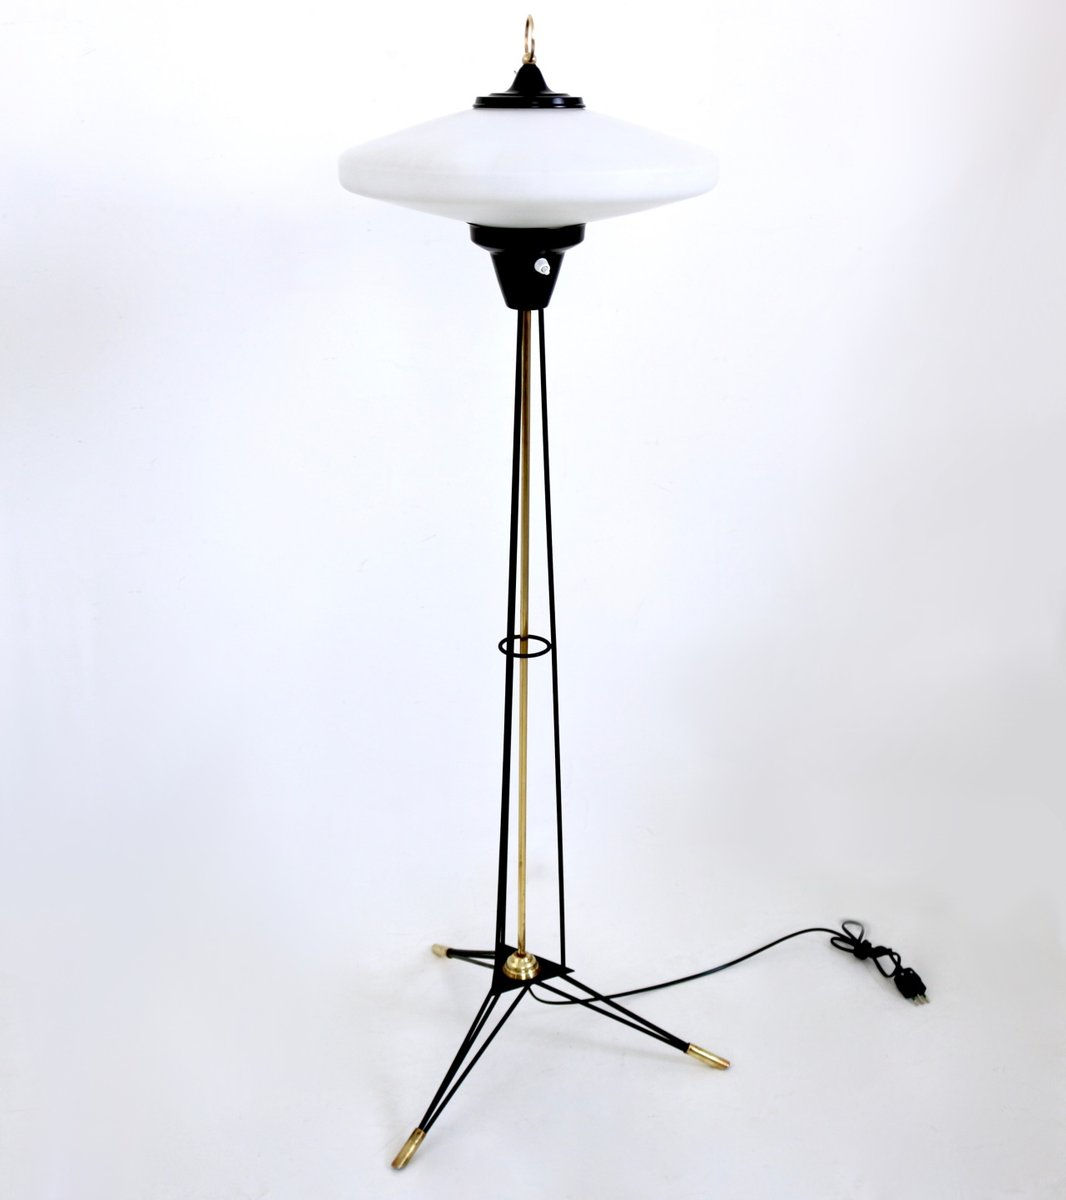 Italian floor lamp with opaline glass shade by stilnovo 1950s for italian floor lamp with opaline glass shade by stilnovo 1950s mozeypictures Choice Image